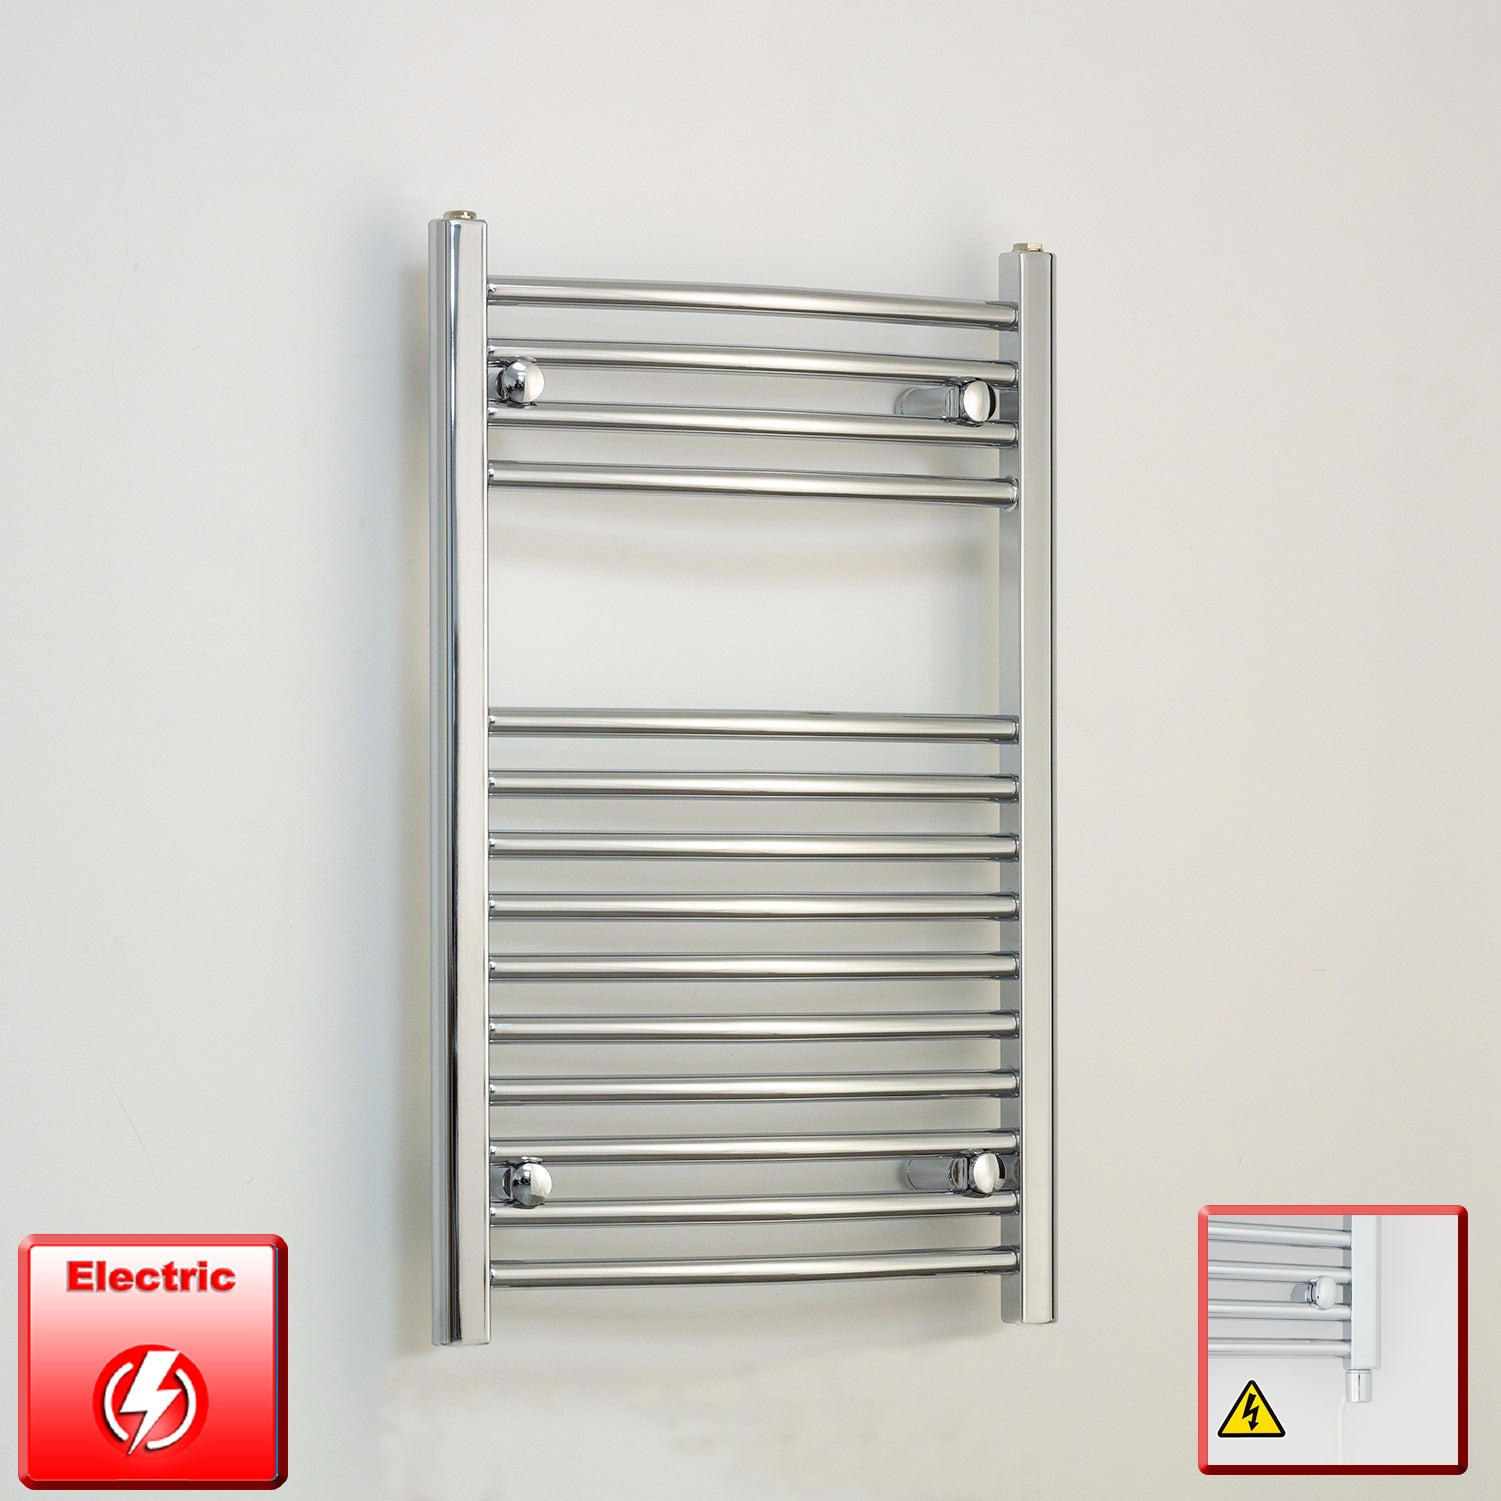 500mm Wide 800mm High Pre-Filled Chrome Electric Towel Rail Radiator With Single Heat Element